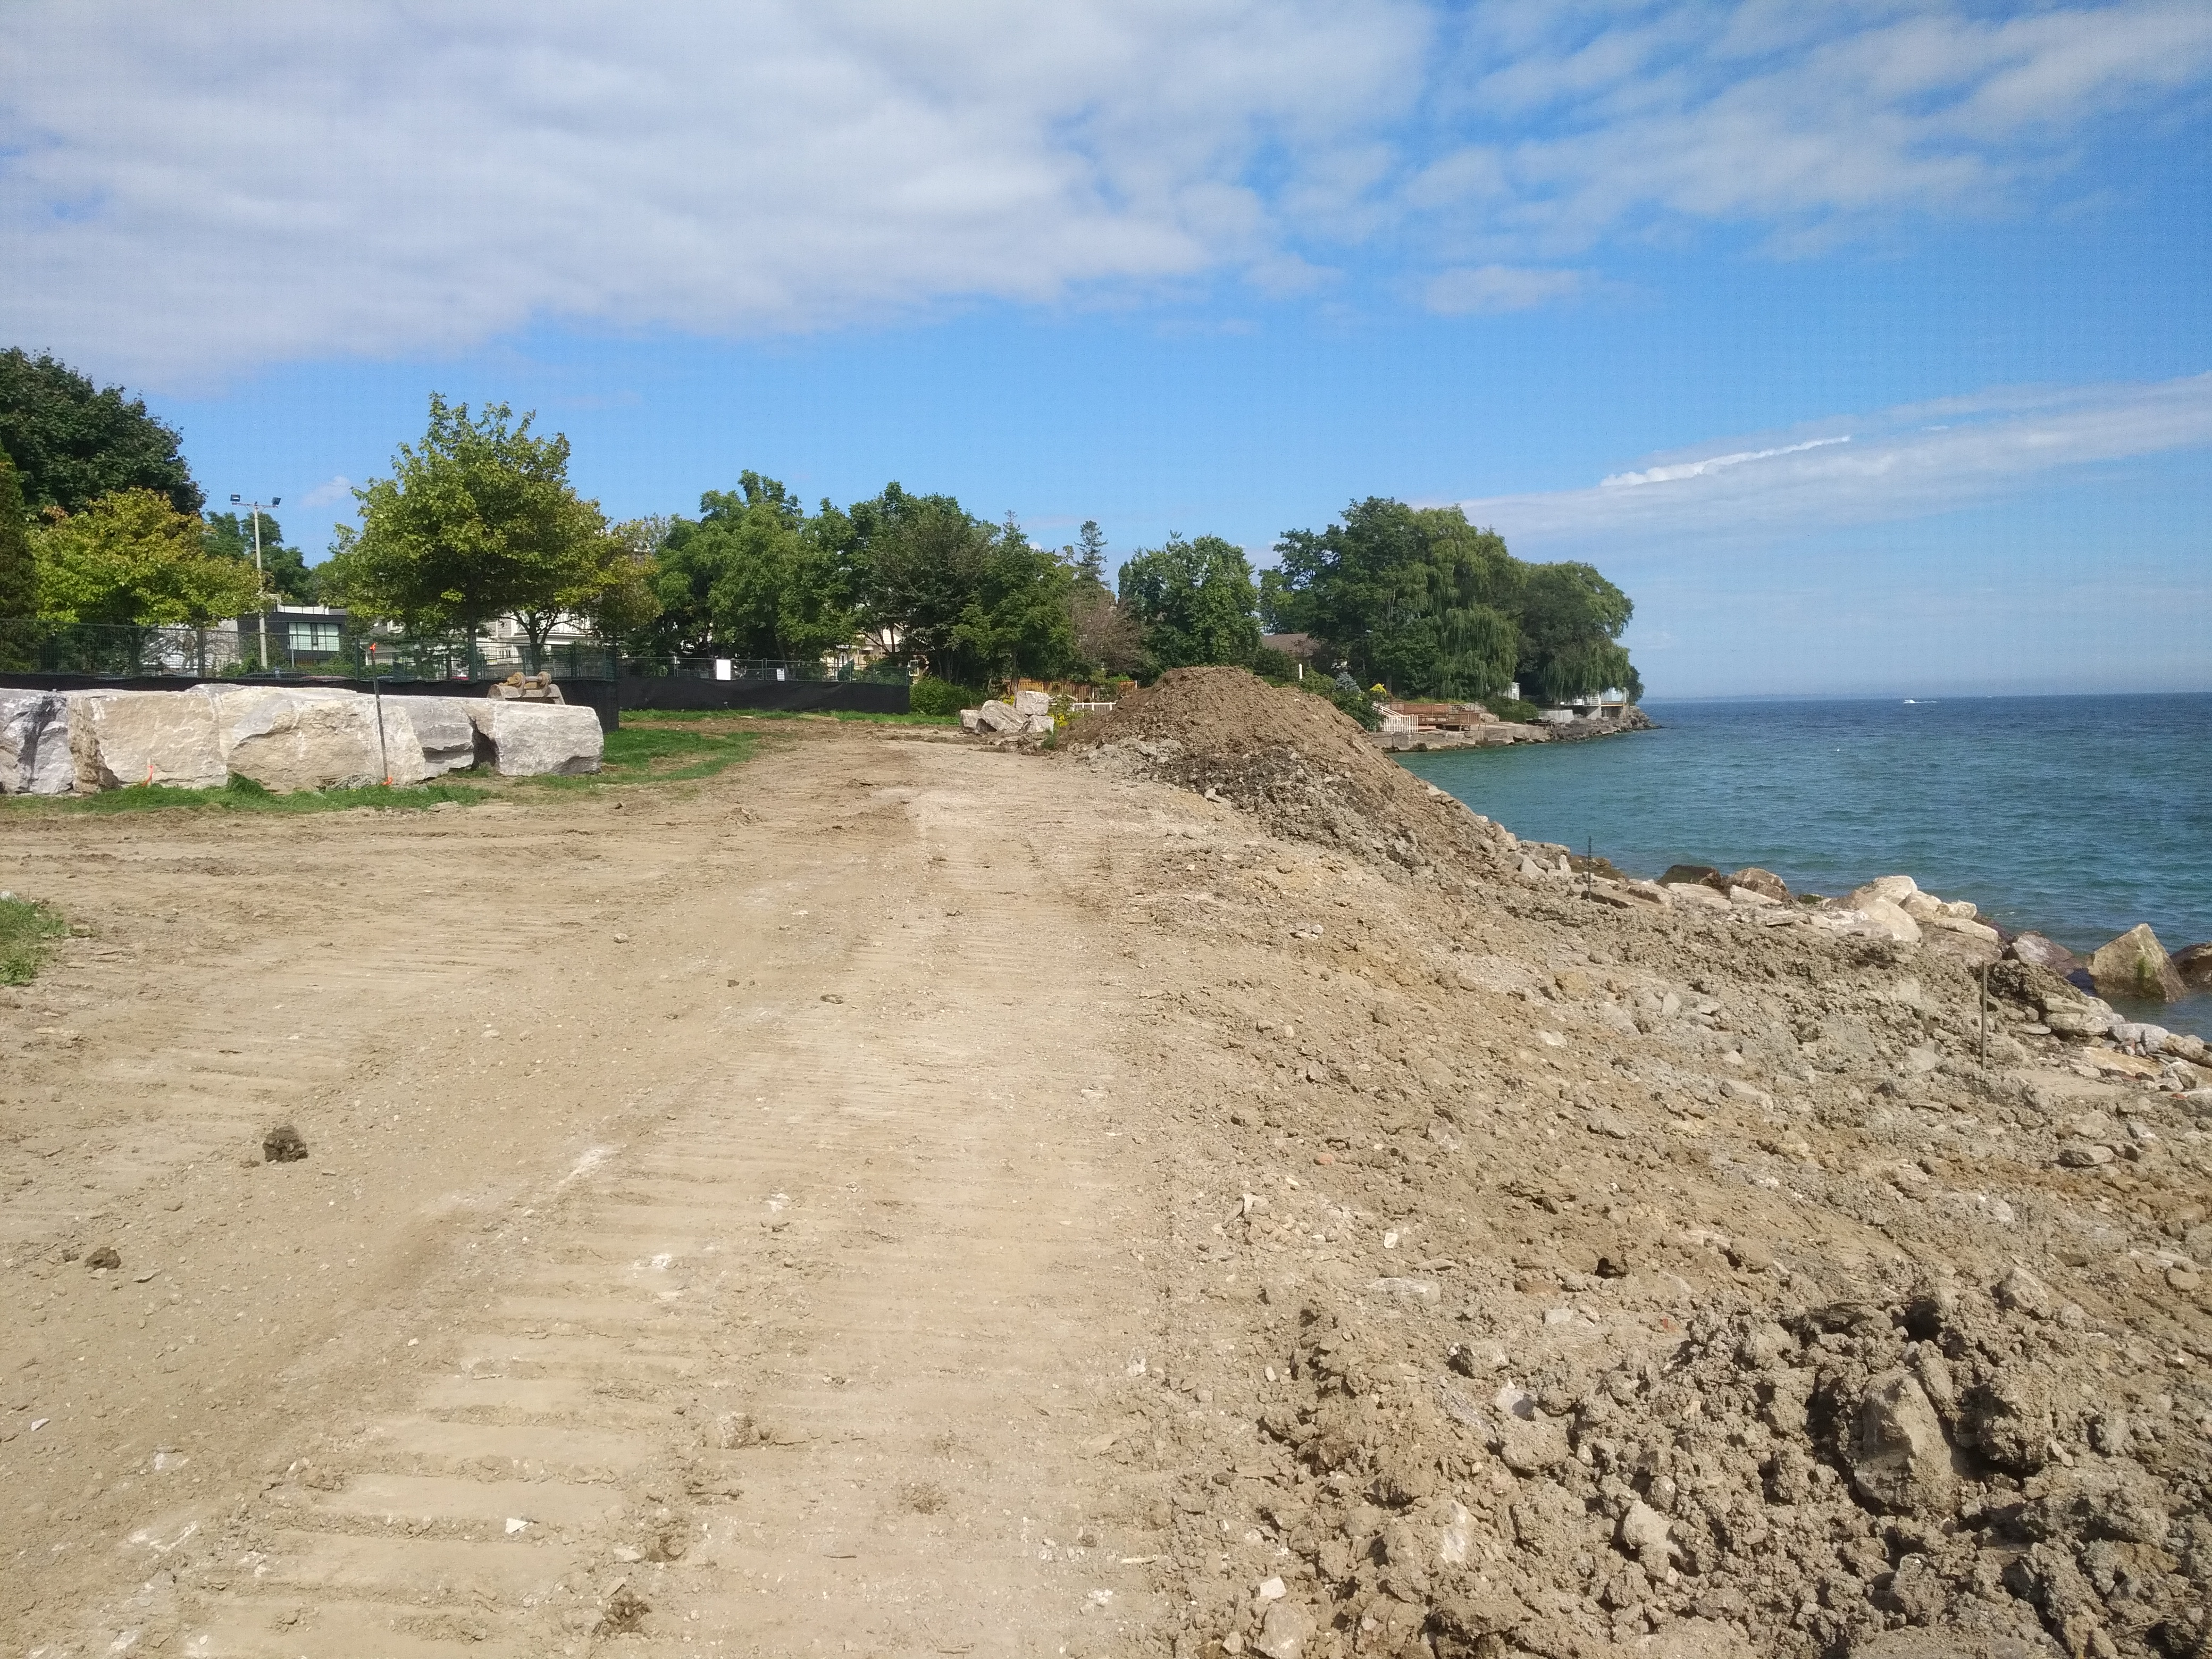 Continuing works at Rotary Peace Park. Source: TRCA, 2018